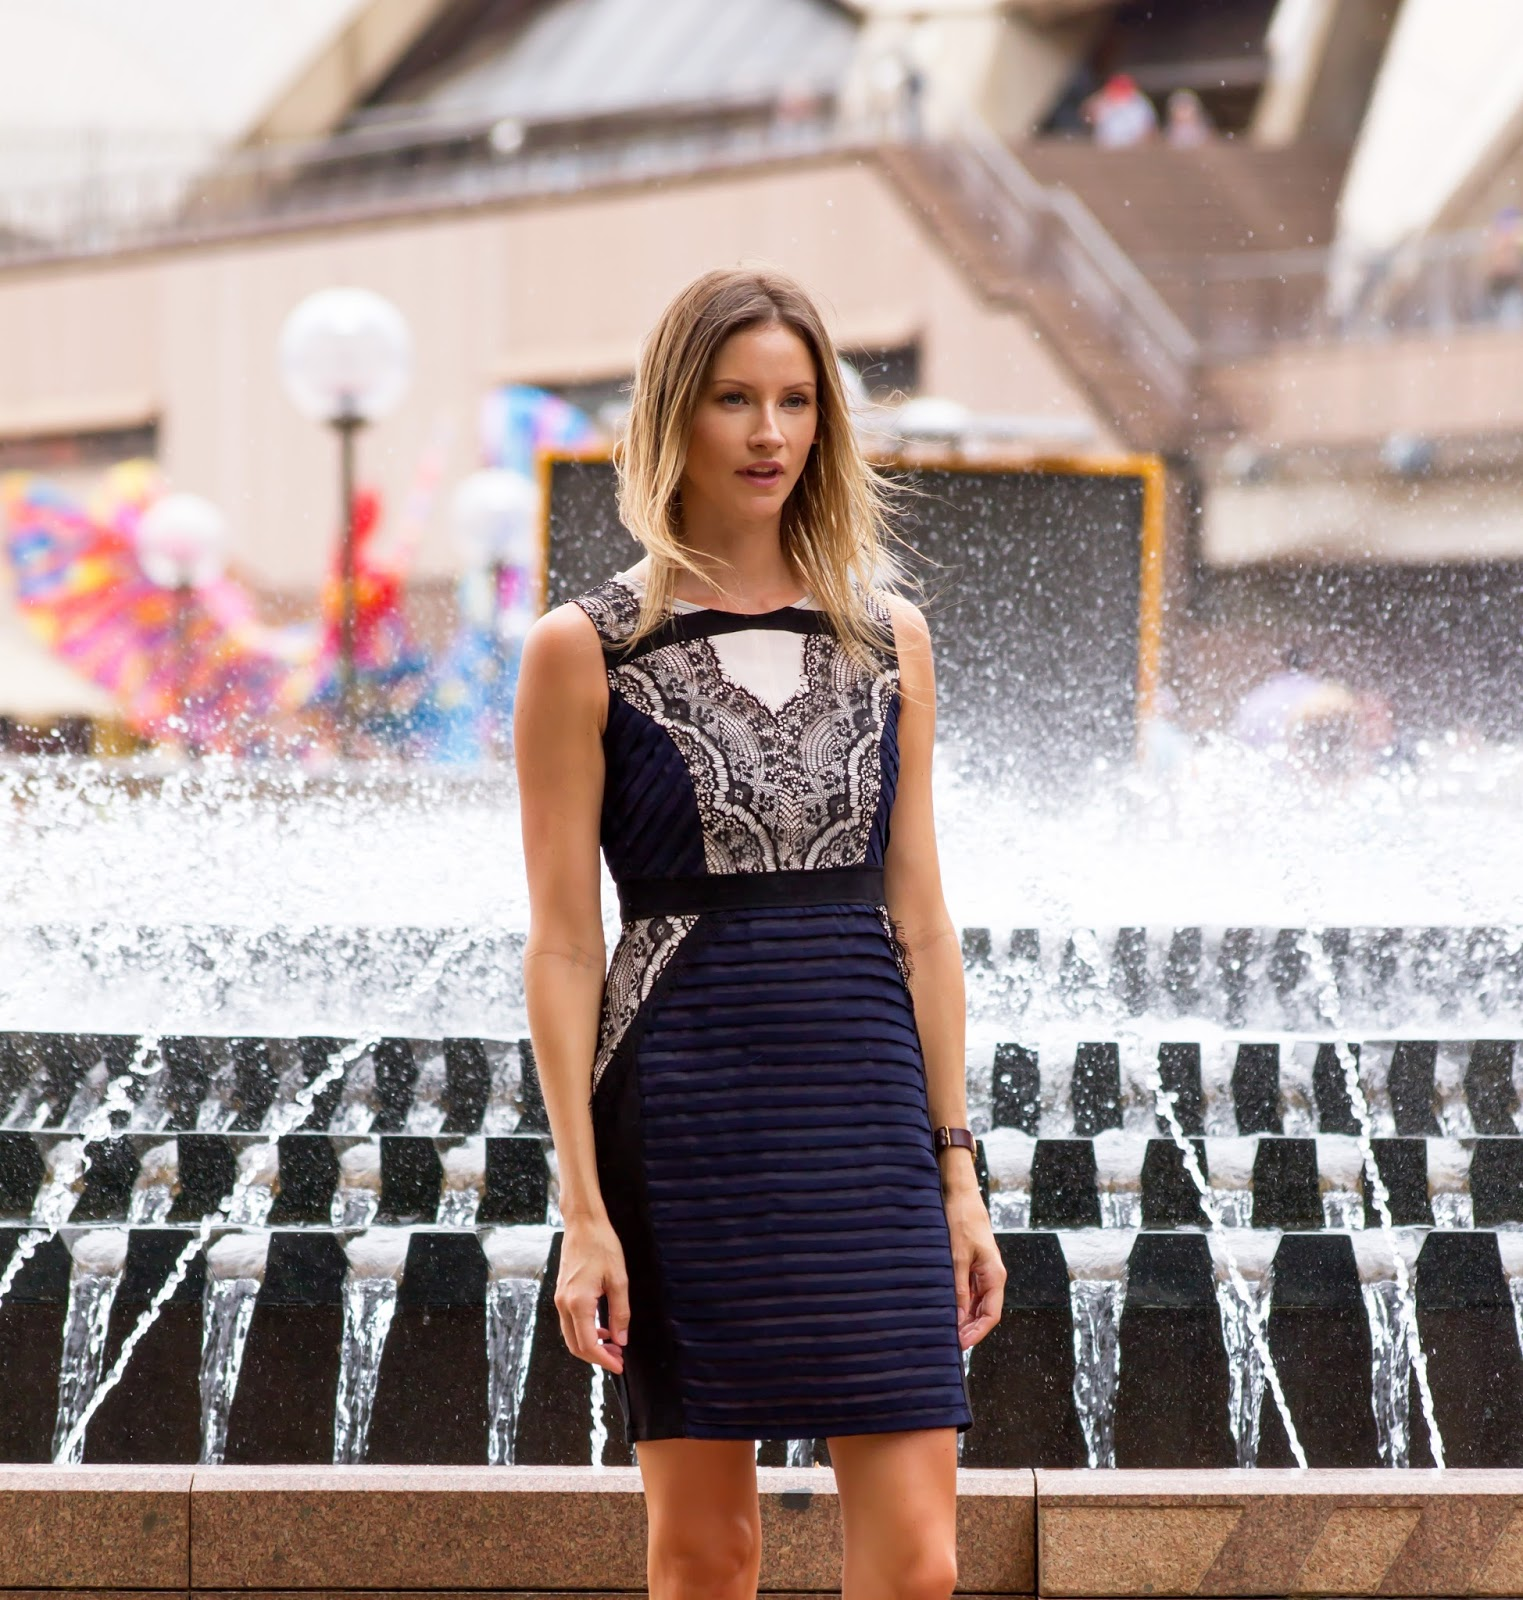 fashion and travel blogger, Alison Hutchinson at the Sydney Harbour in a workwear navy and black lace dress